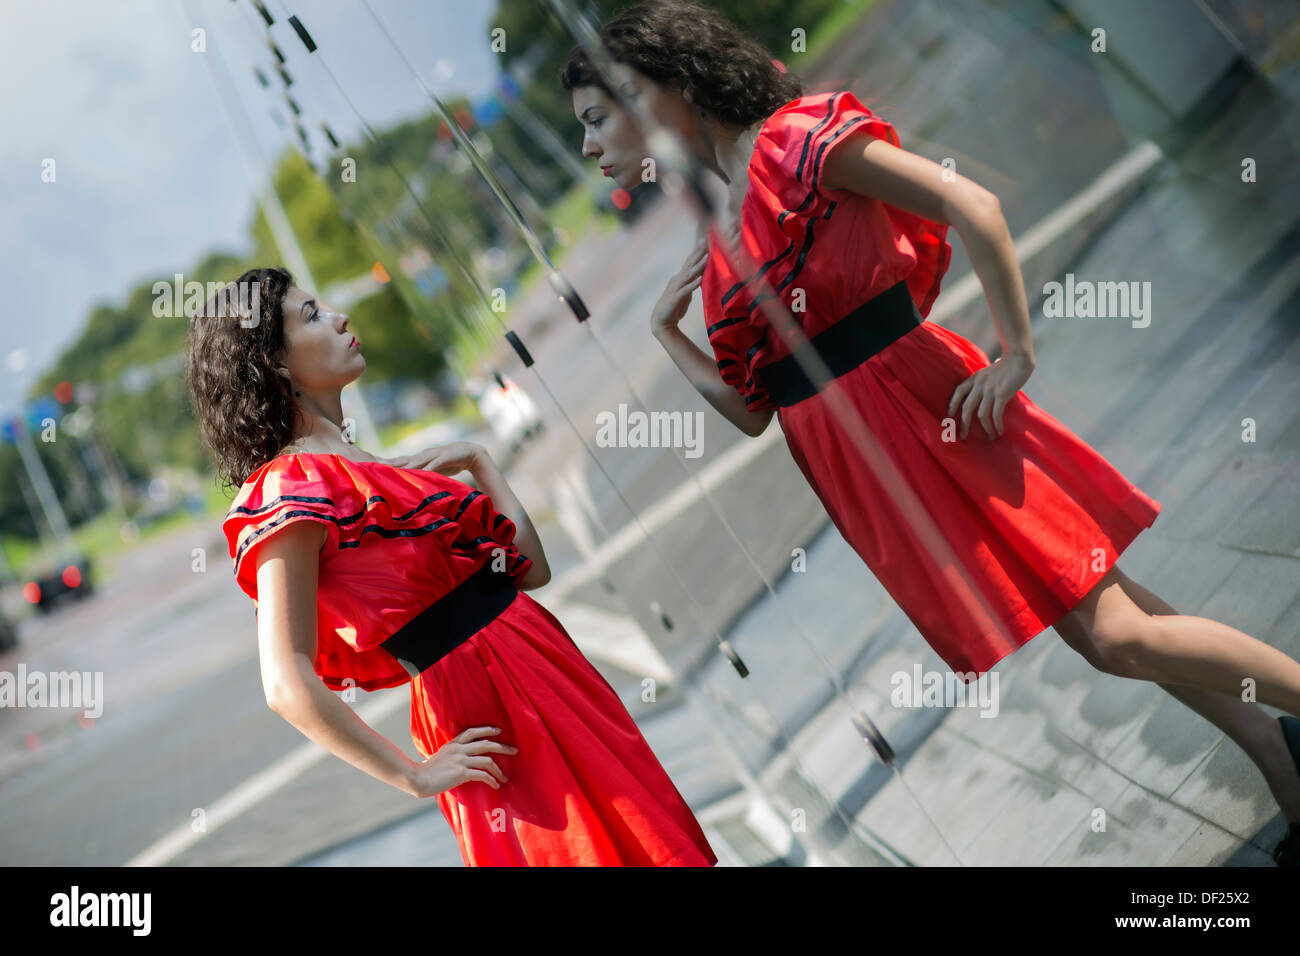 Woman in soaking wet dress adjust her outlook - Stock Image